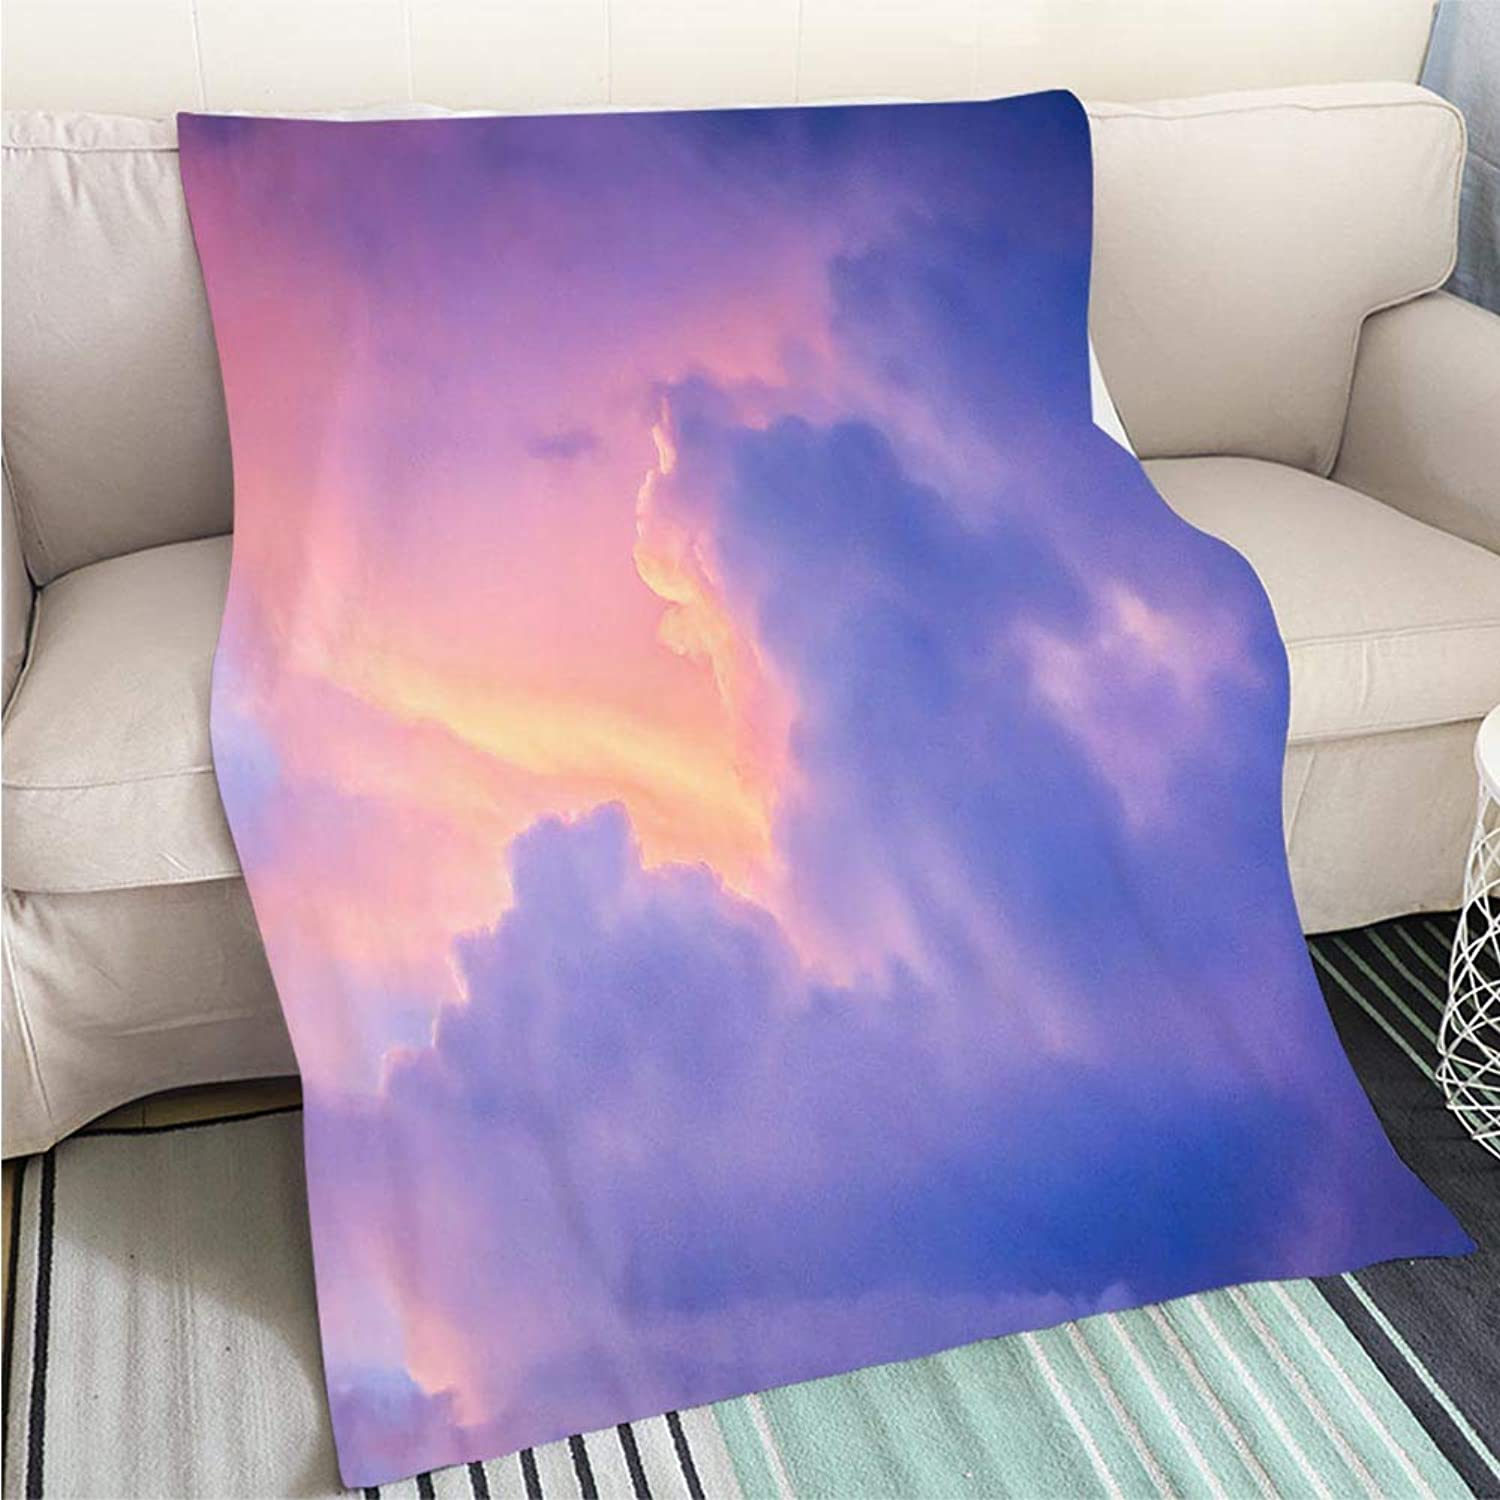 BEICICI Comforter Multicolor Bed or Couch Dramatic Sunset Sky with Varying Coloured Clouds Fun Design All-Season Blanket Bed or Couch